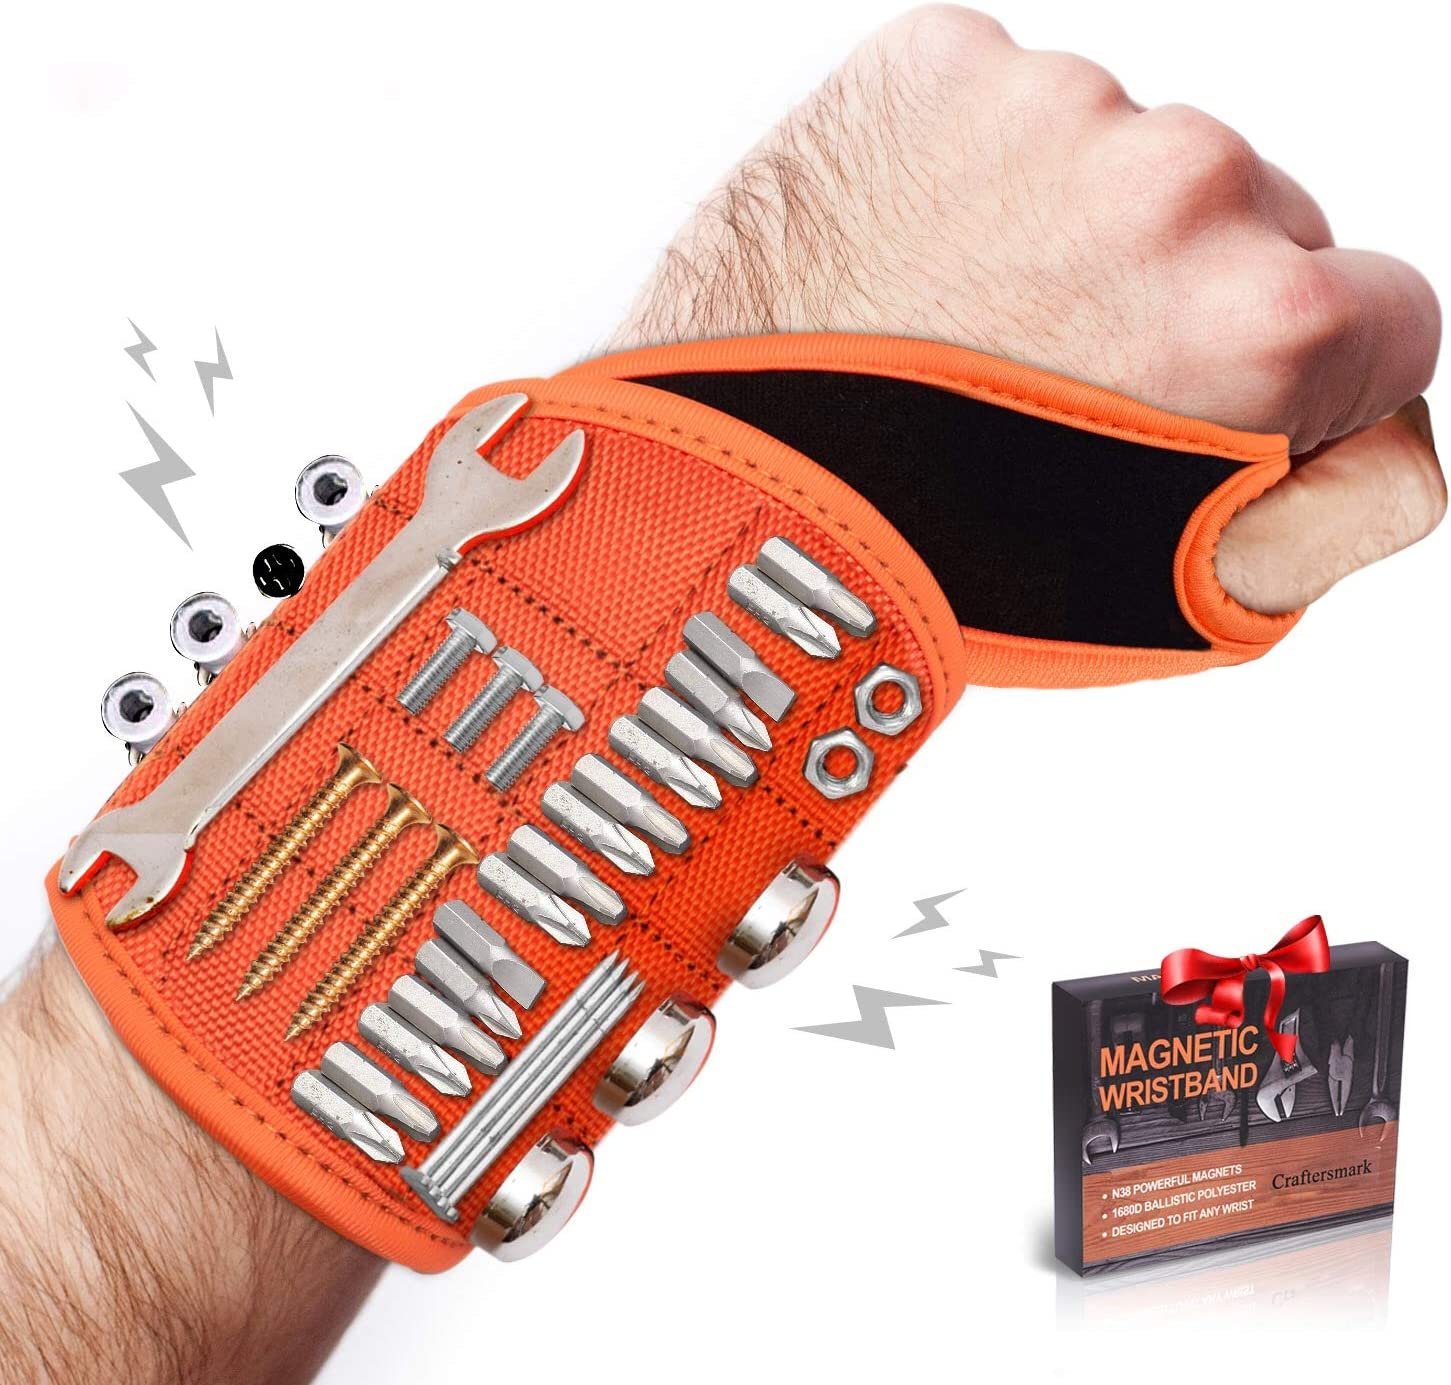 Magnetic Tool Wristband With Wrist Support Design